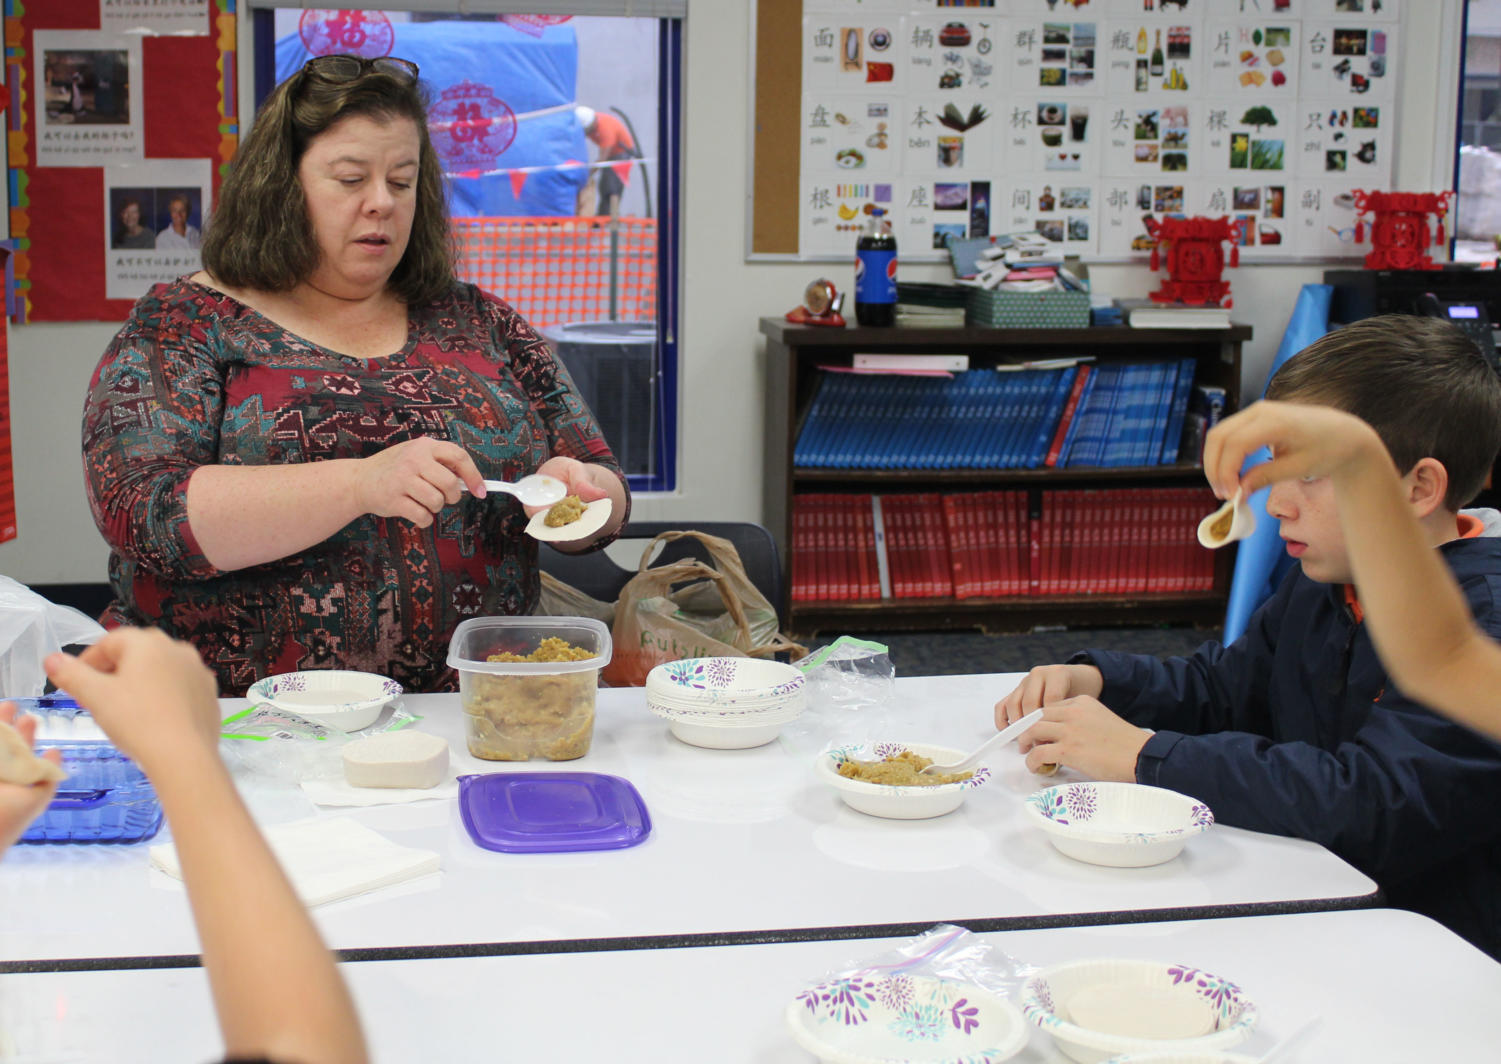 Ms. Latimer helps her students make traditional Chinese dumplings during class on Wednesday, February 13.